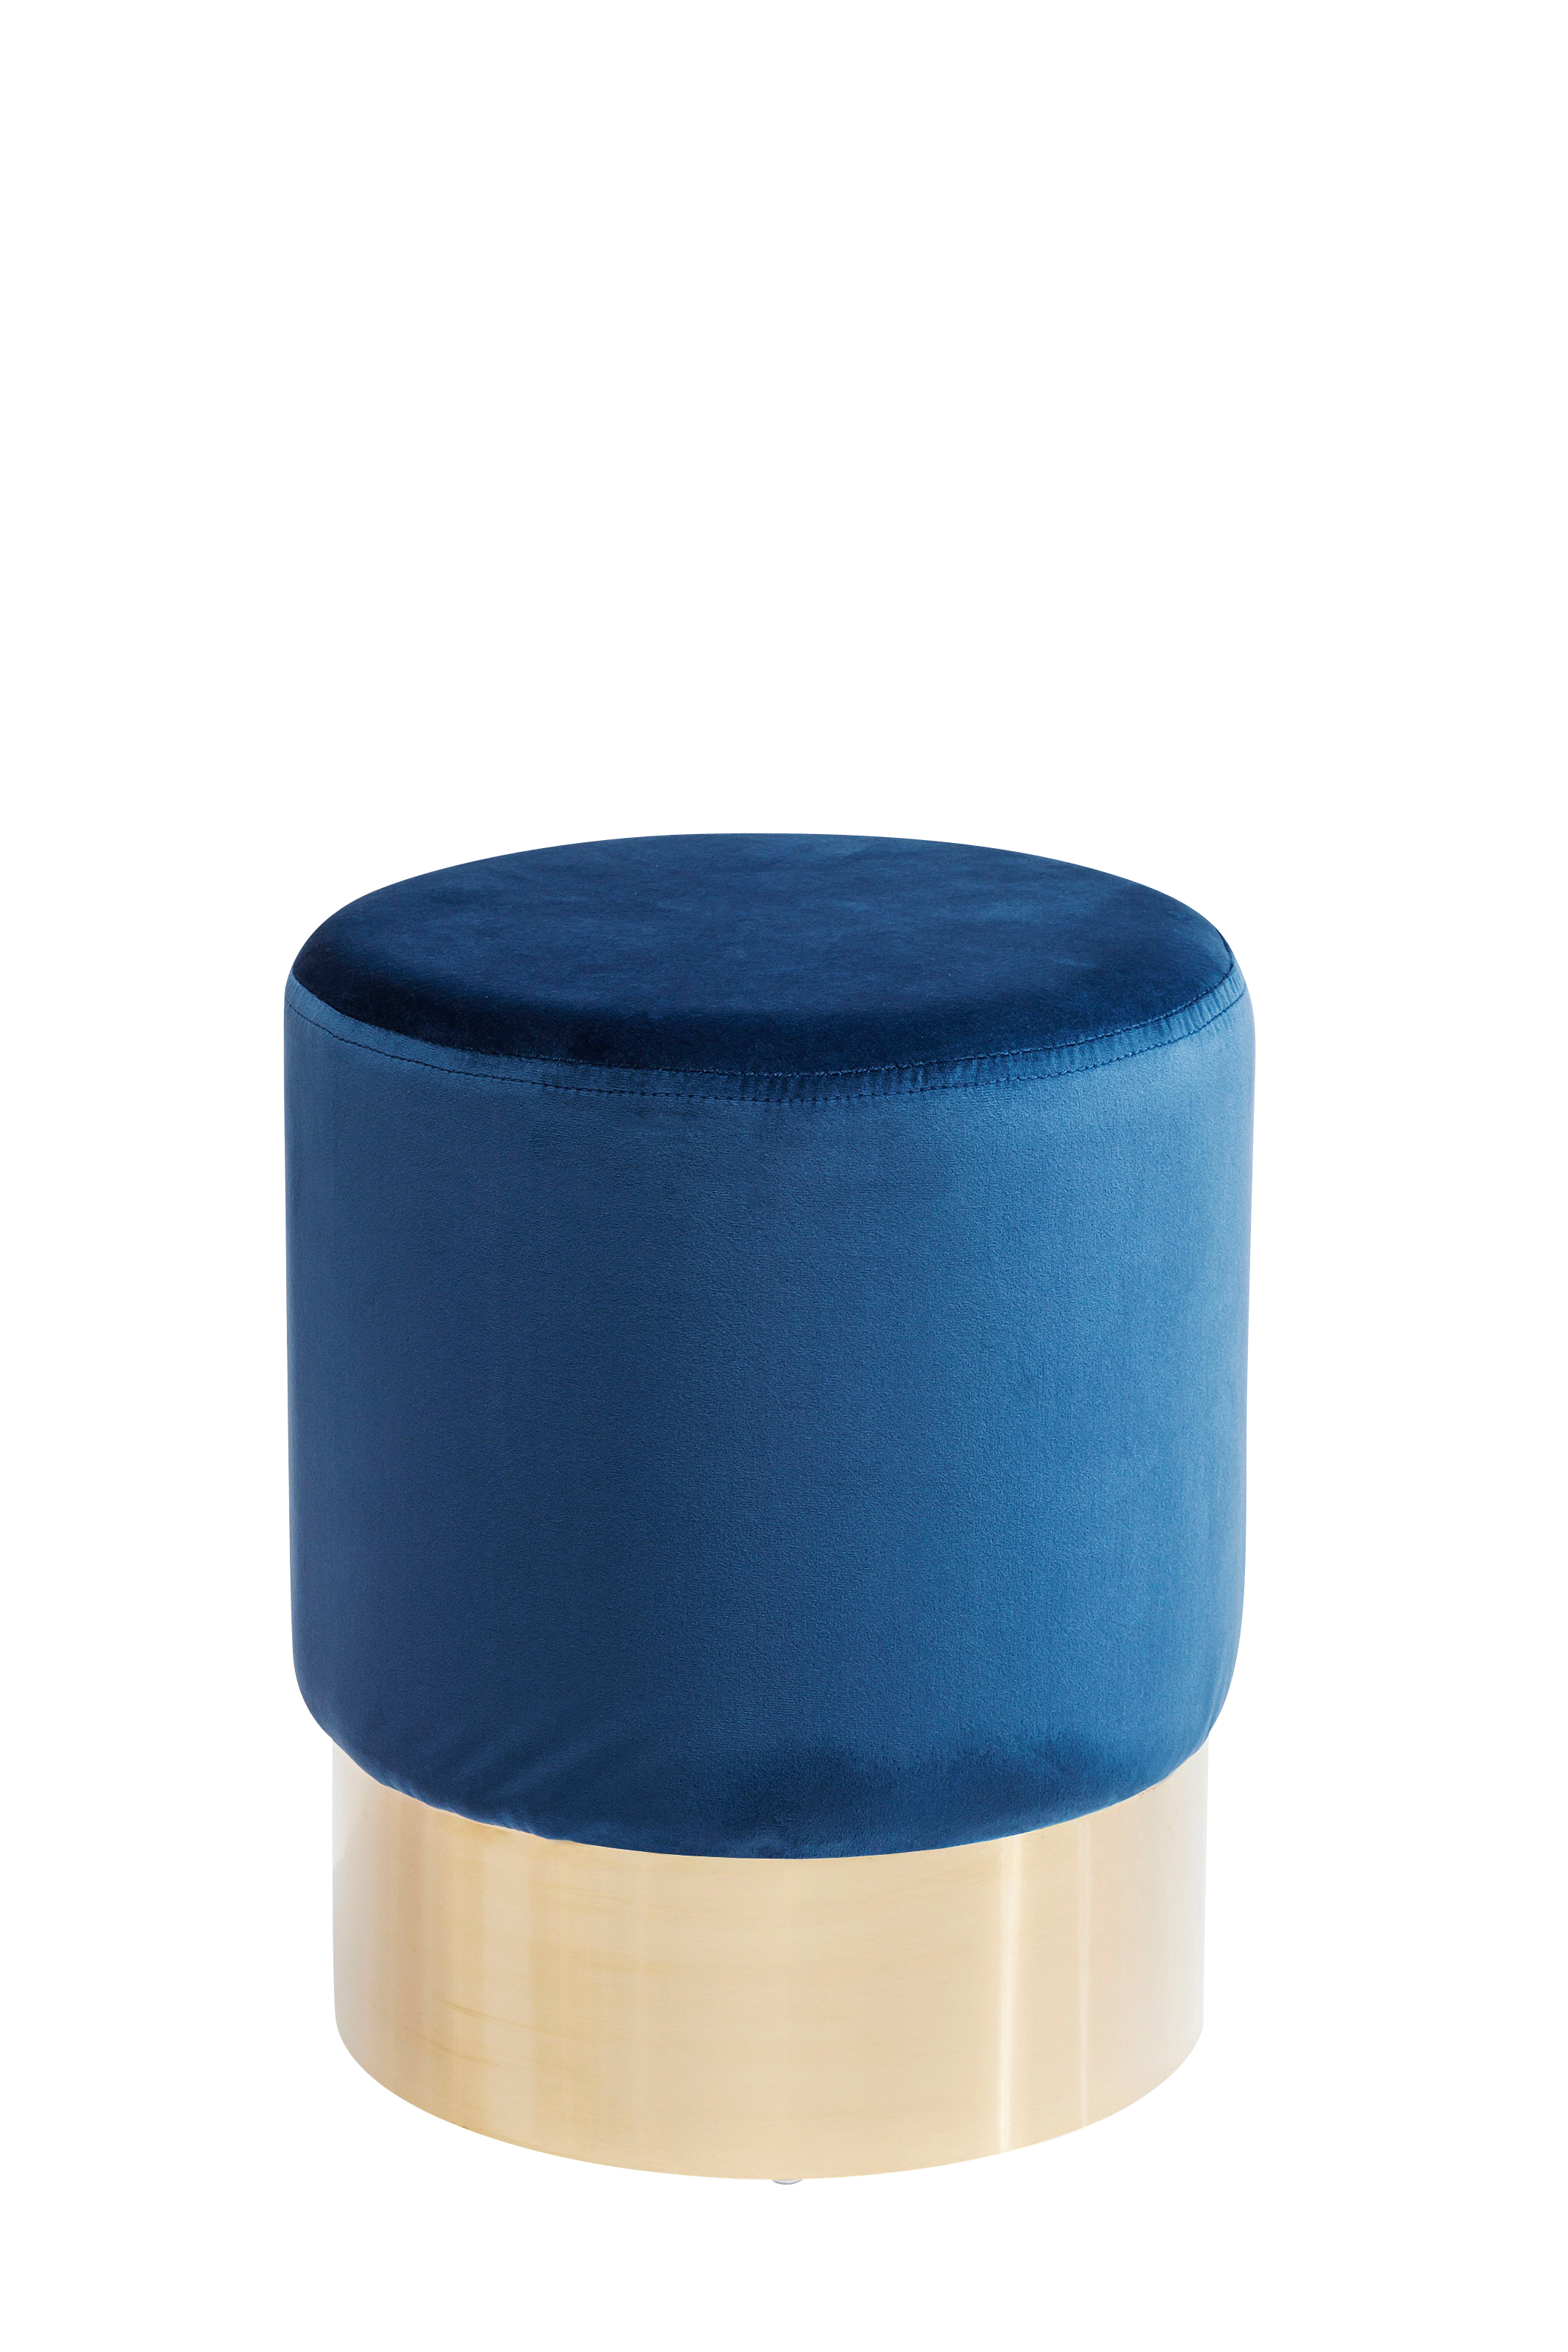 Hocker Cherry Blau Brass  Ø35cm